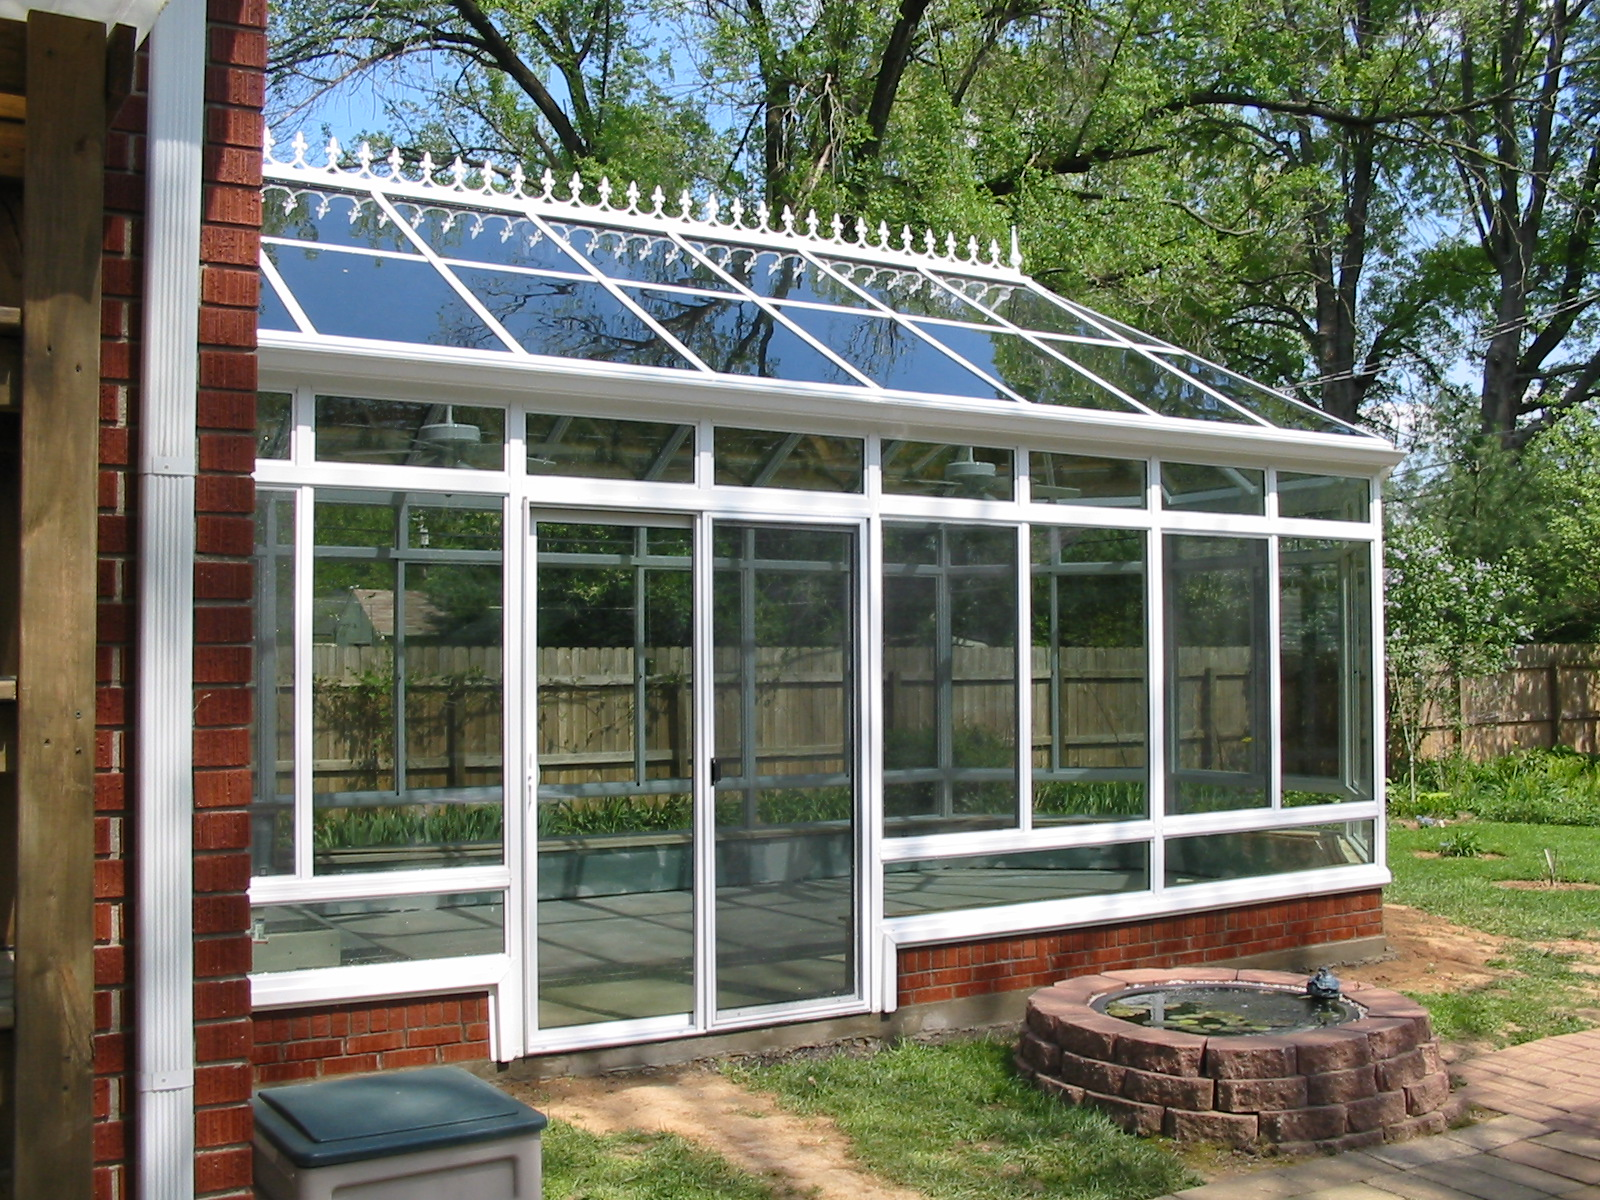 Victorian Conservatory Aluminum Glass Roof Design White with glass transoms and kickpanels